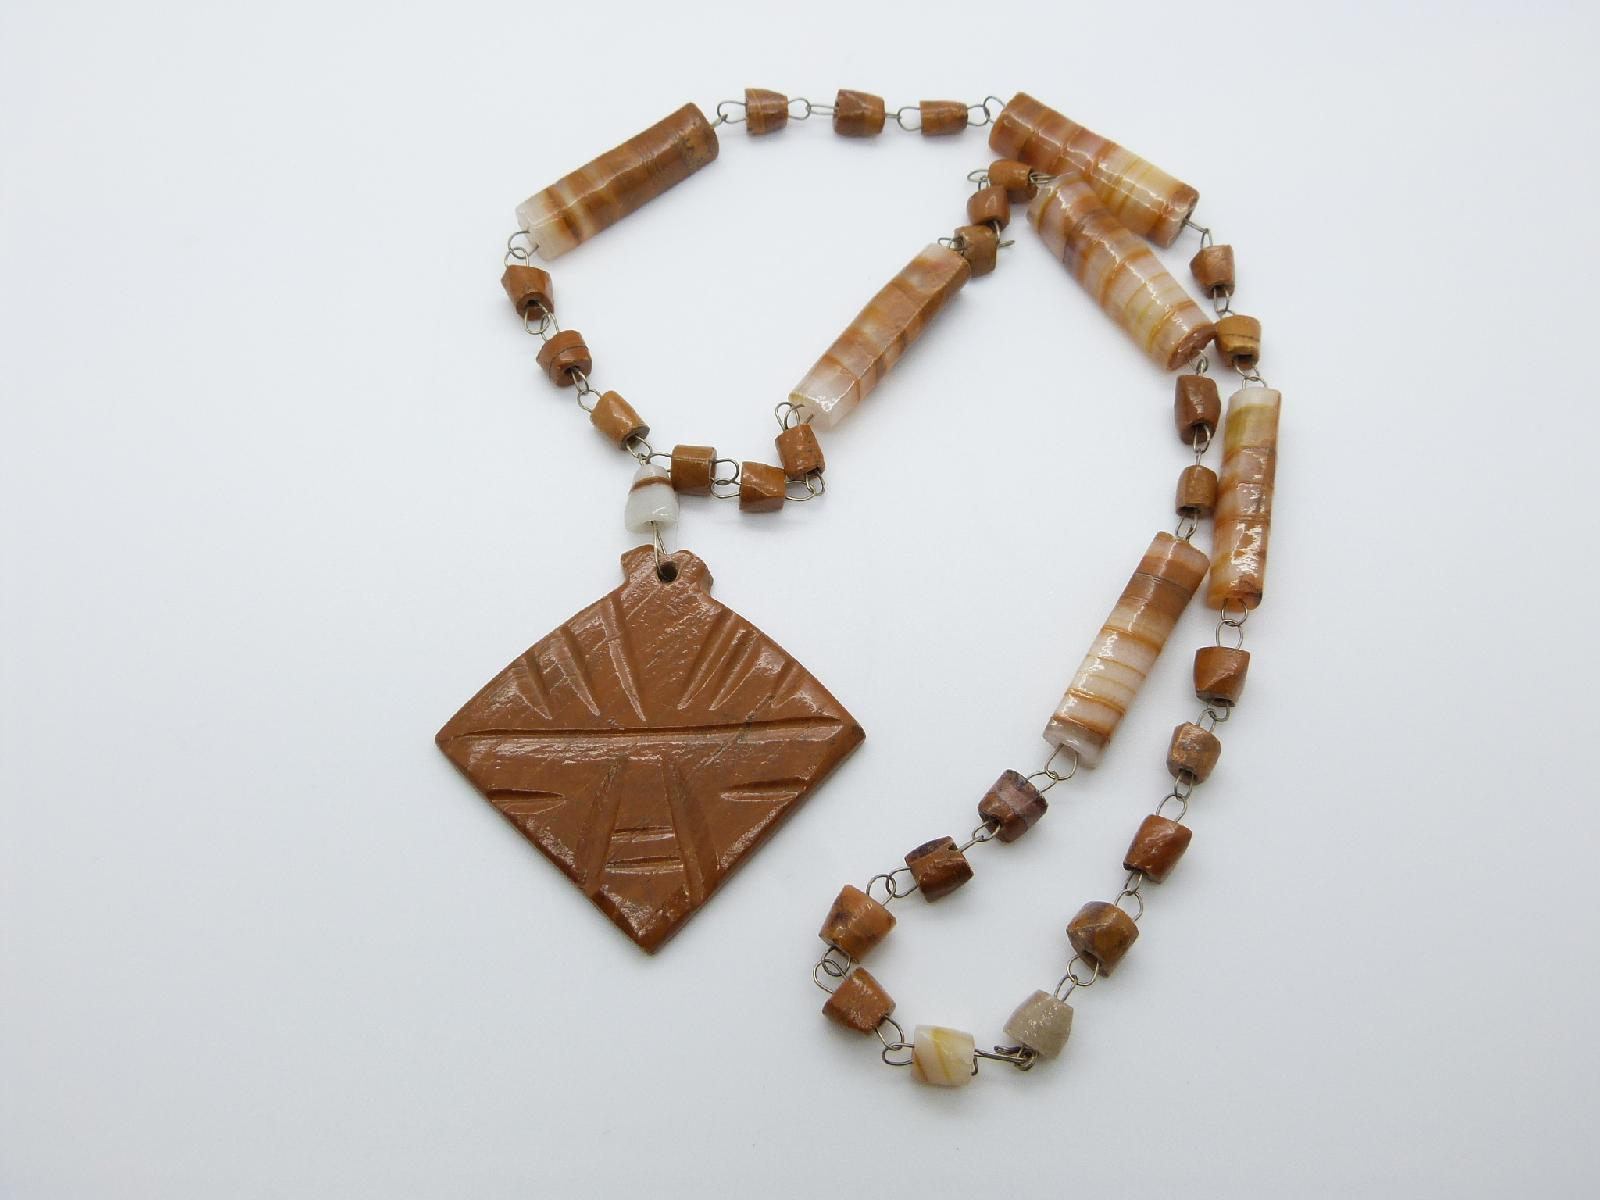 Vitntage 70s Real Brown Banded Agate Bead Necklace with Large Pendant